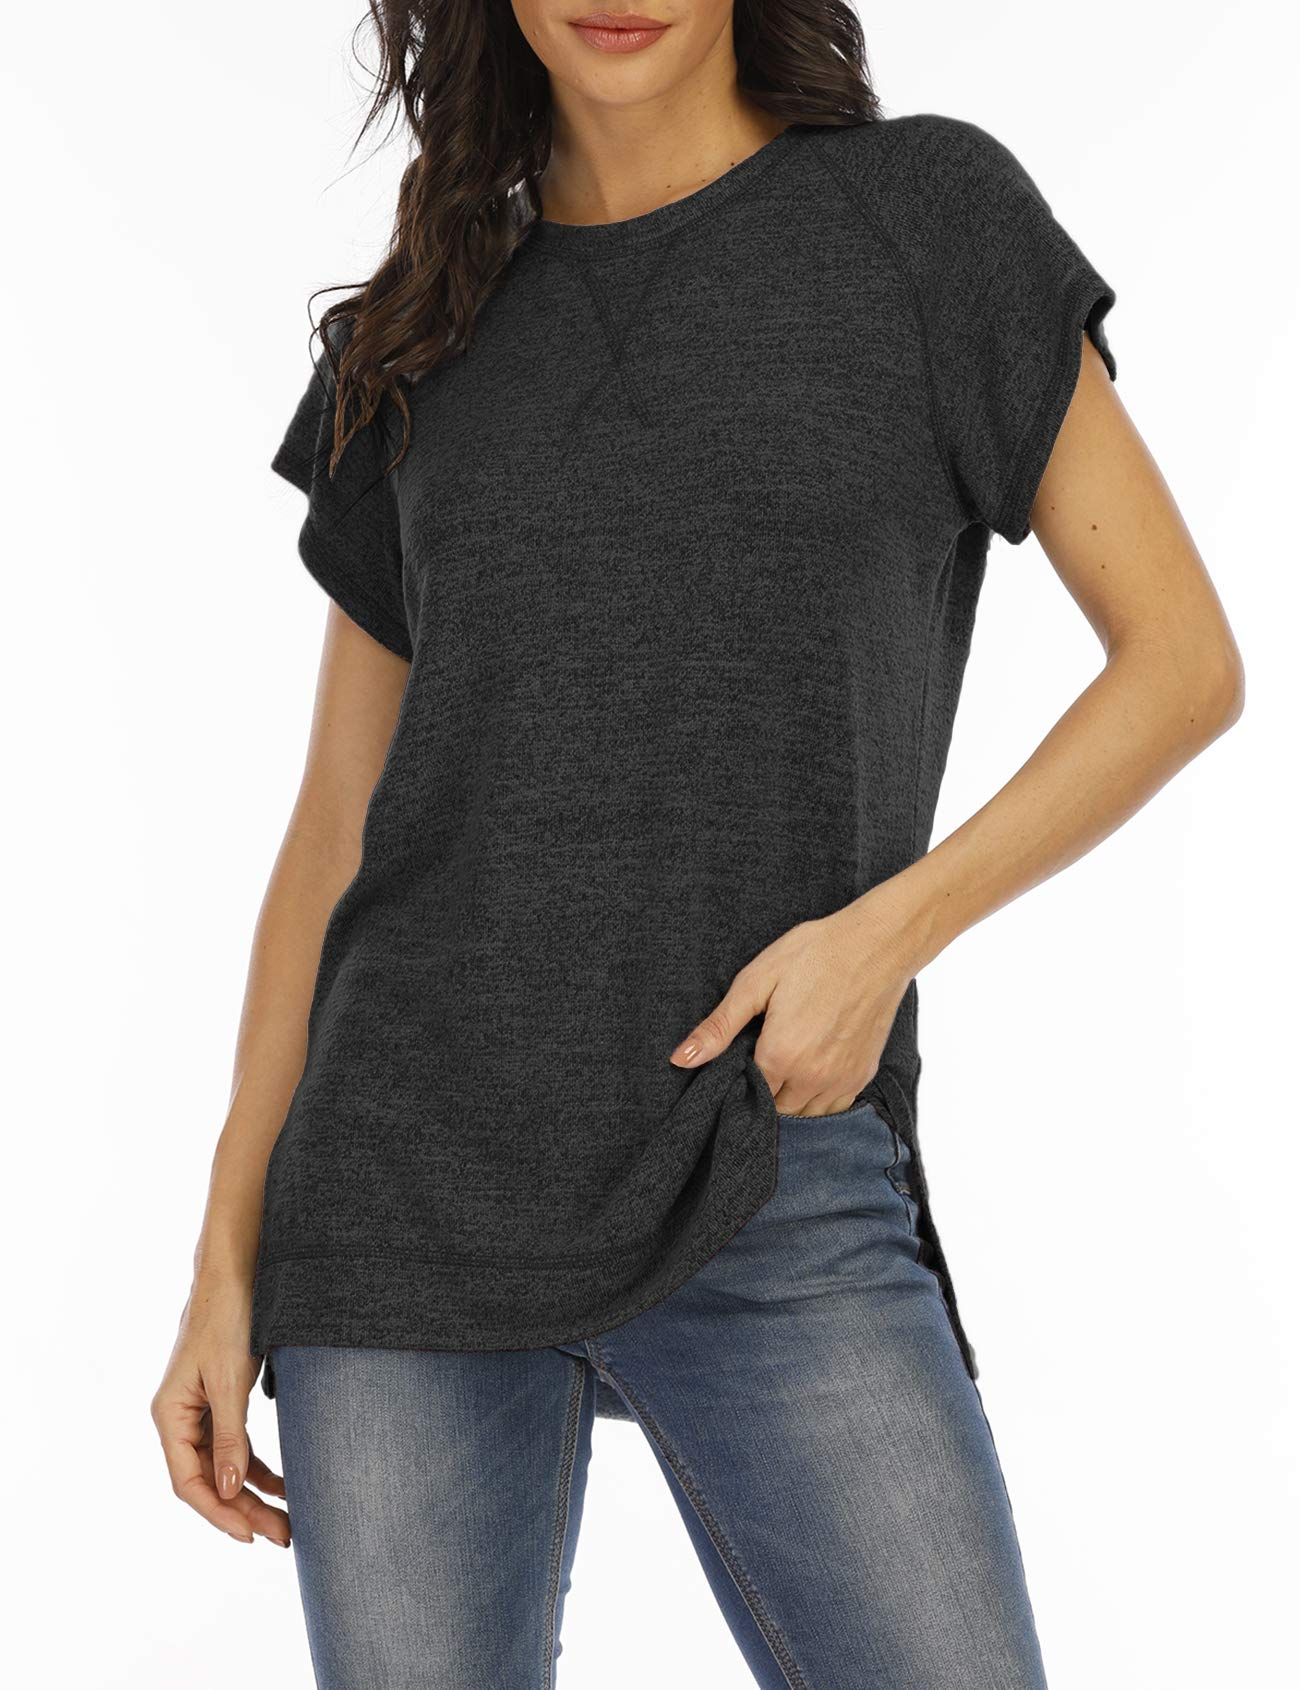 LERUCCI Womens Round Neck Short Sleeve T-Shirt Casual Tunic Tops with Side